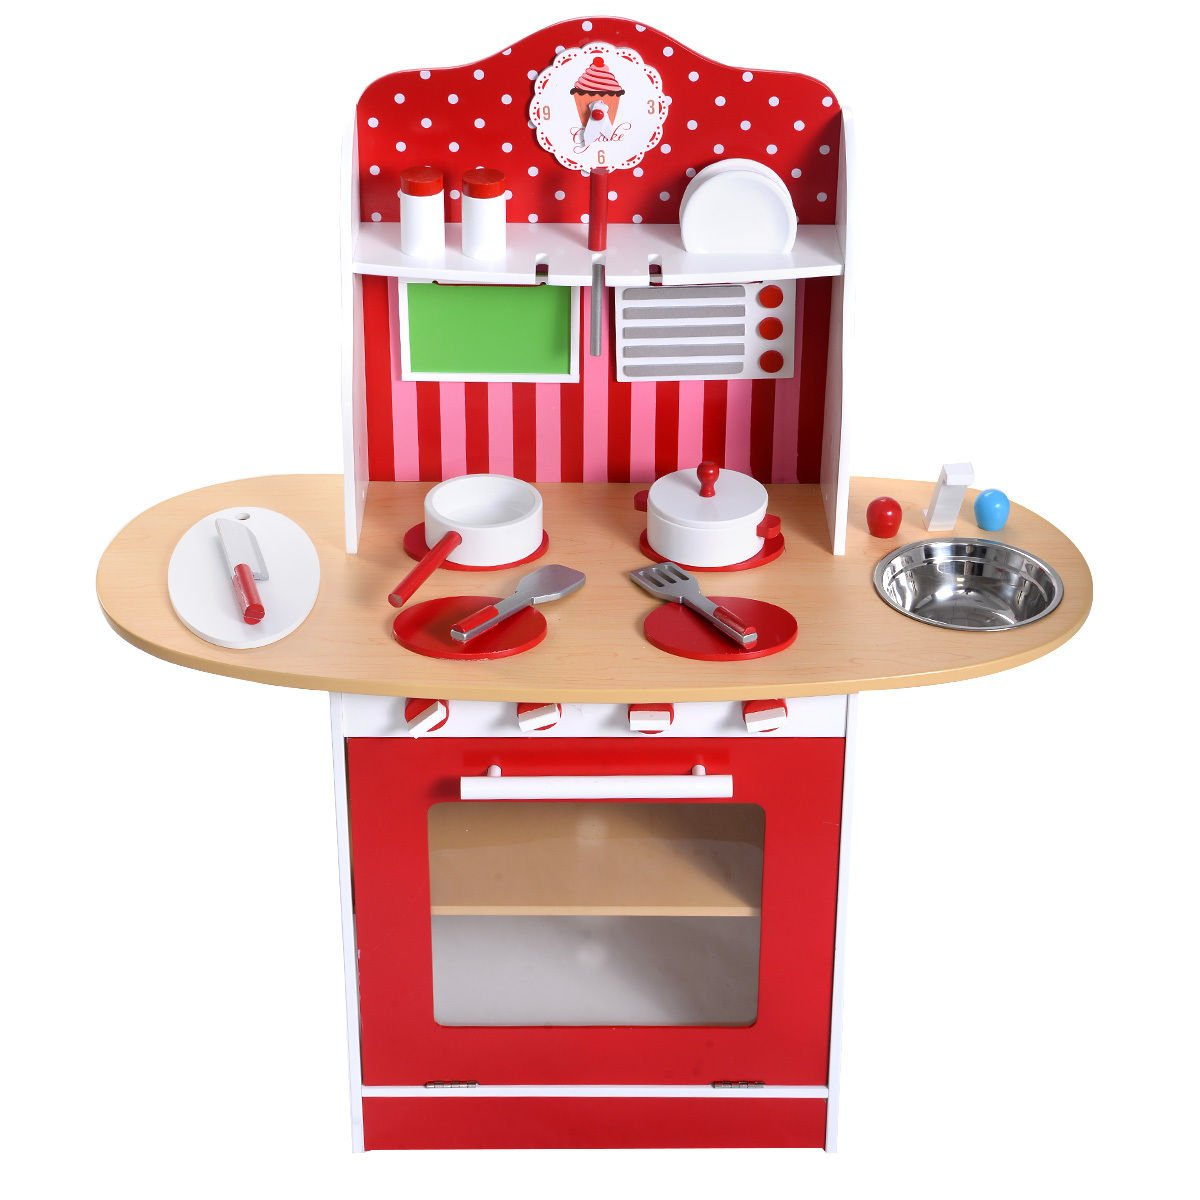 Lapha' Bar Shop Kids Toy Chef Cooking Set Kiosk Wood Kitchen Toy Child Girls Cooking Play Set Toddler Wooden Playset Gift Cookware Utensils New Pans Pots Toys Dishes